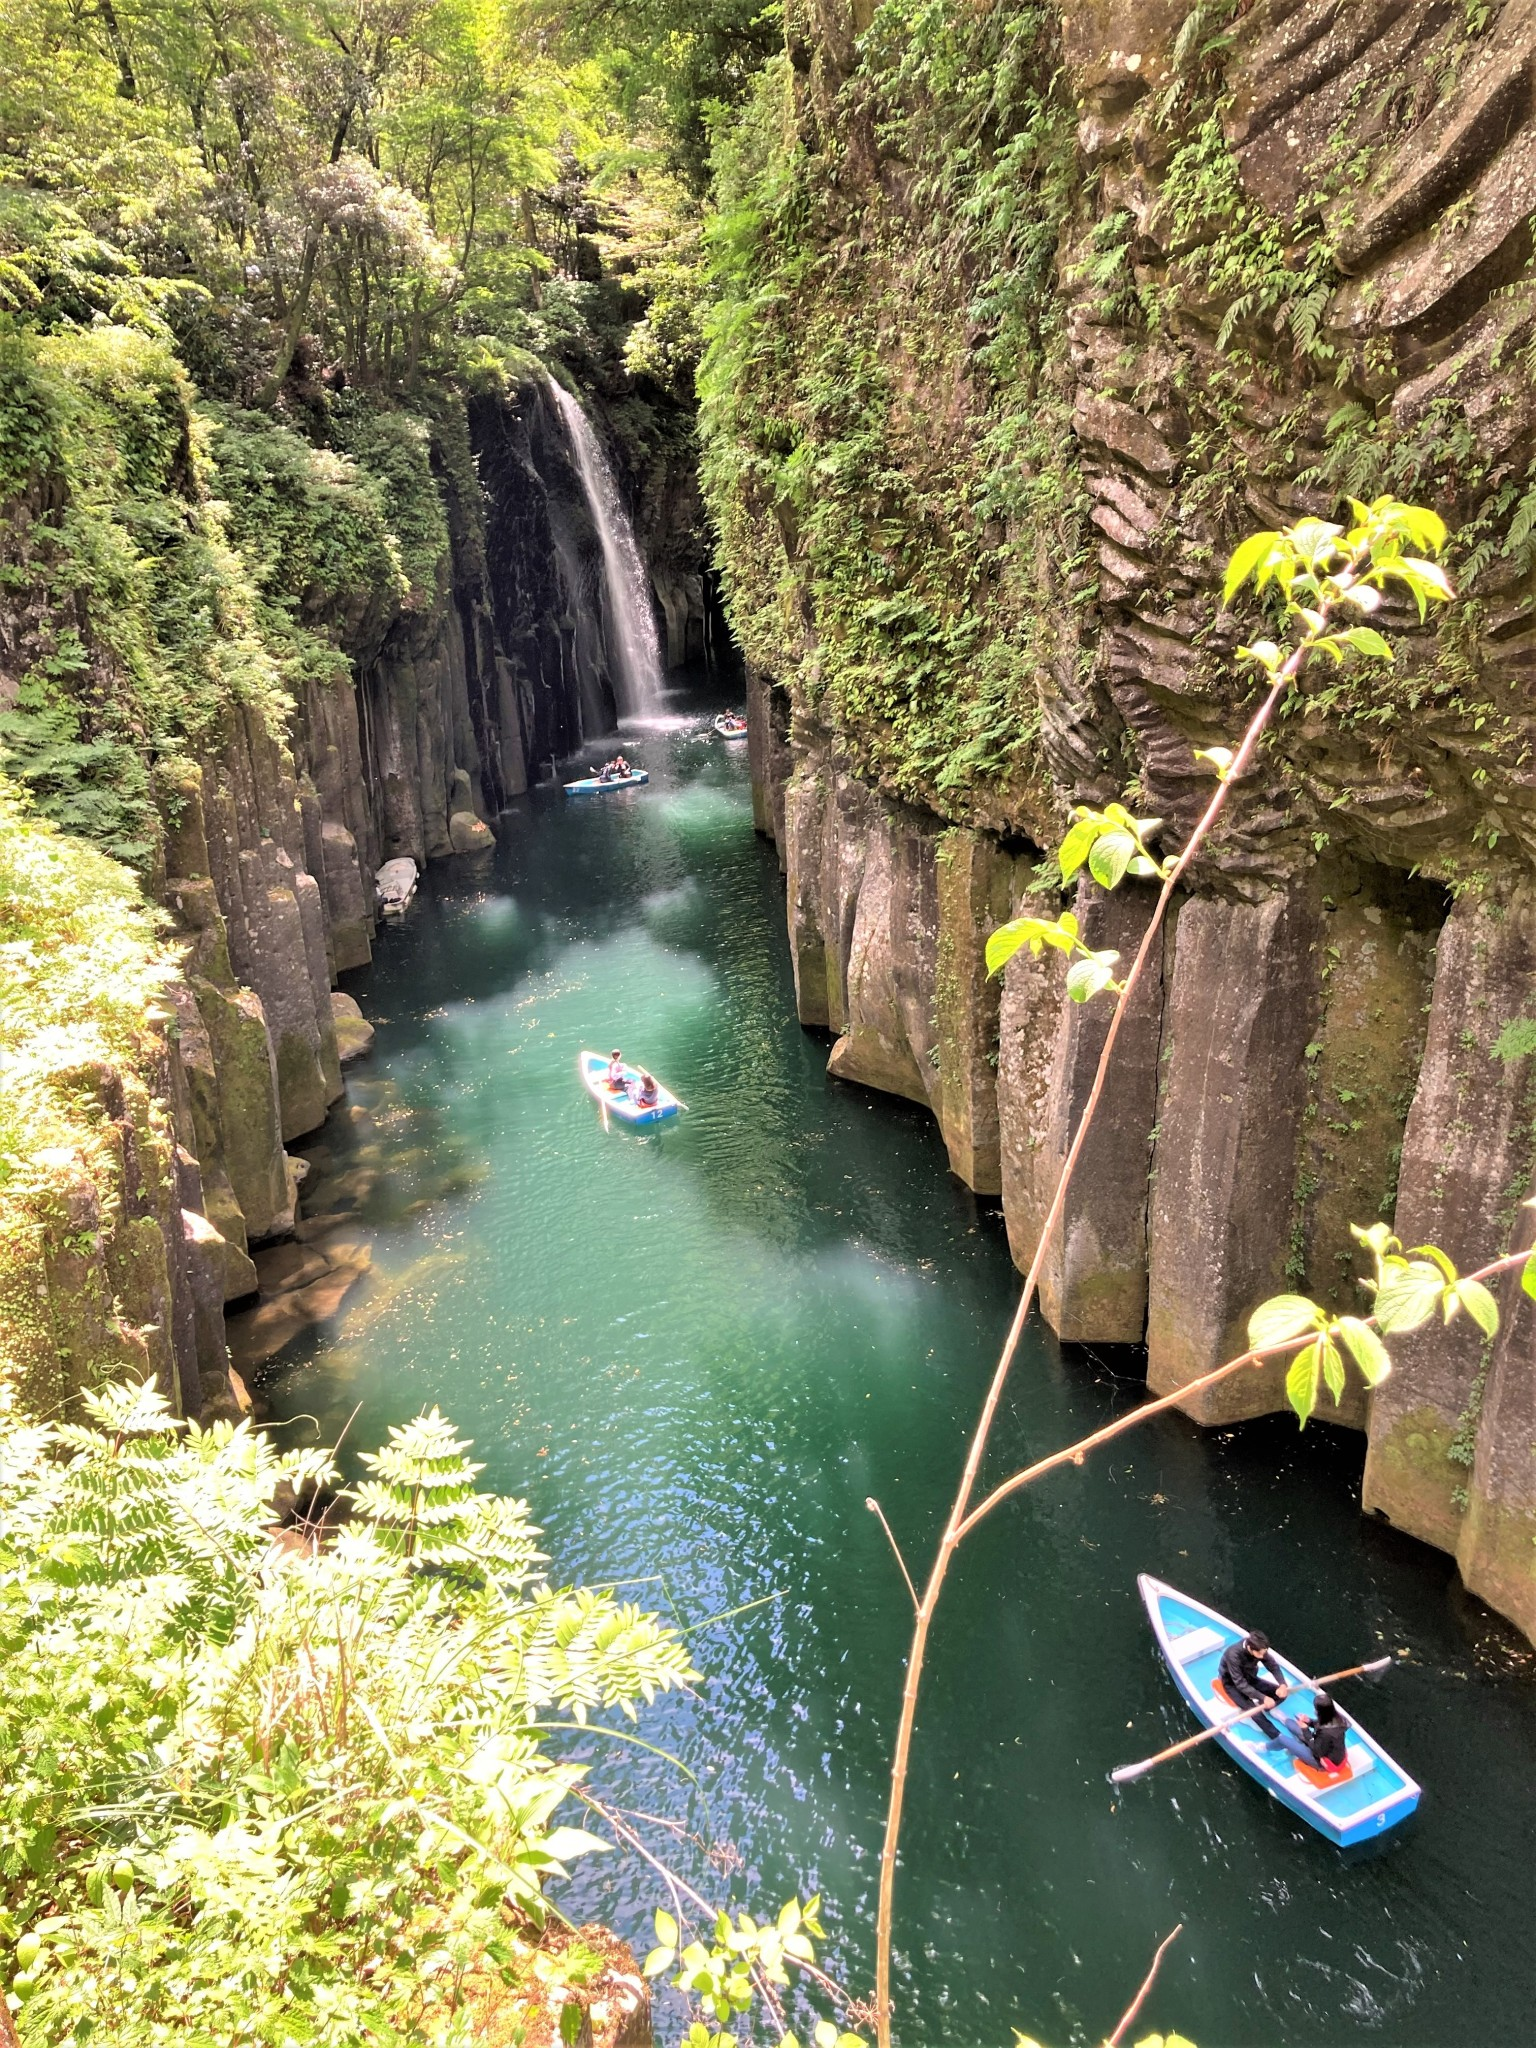 Two couples in rowing boats enjoying the waterfalls and scenery of Takachiho Gorge in Miyazaki, Japan.